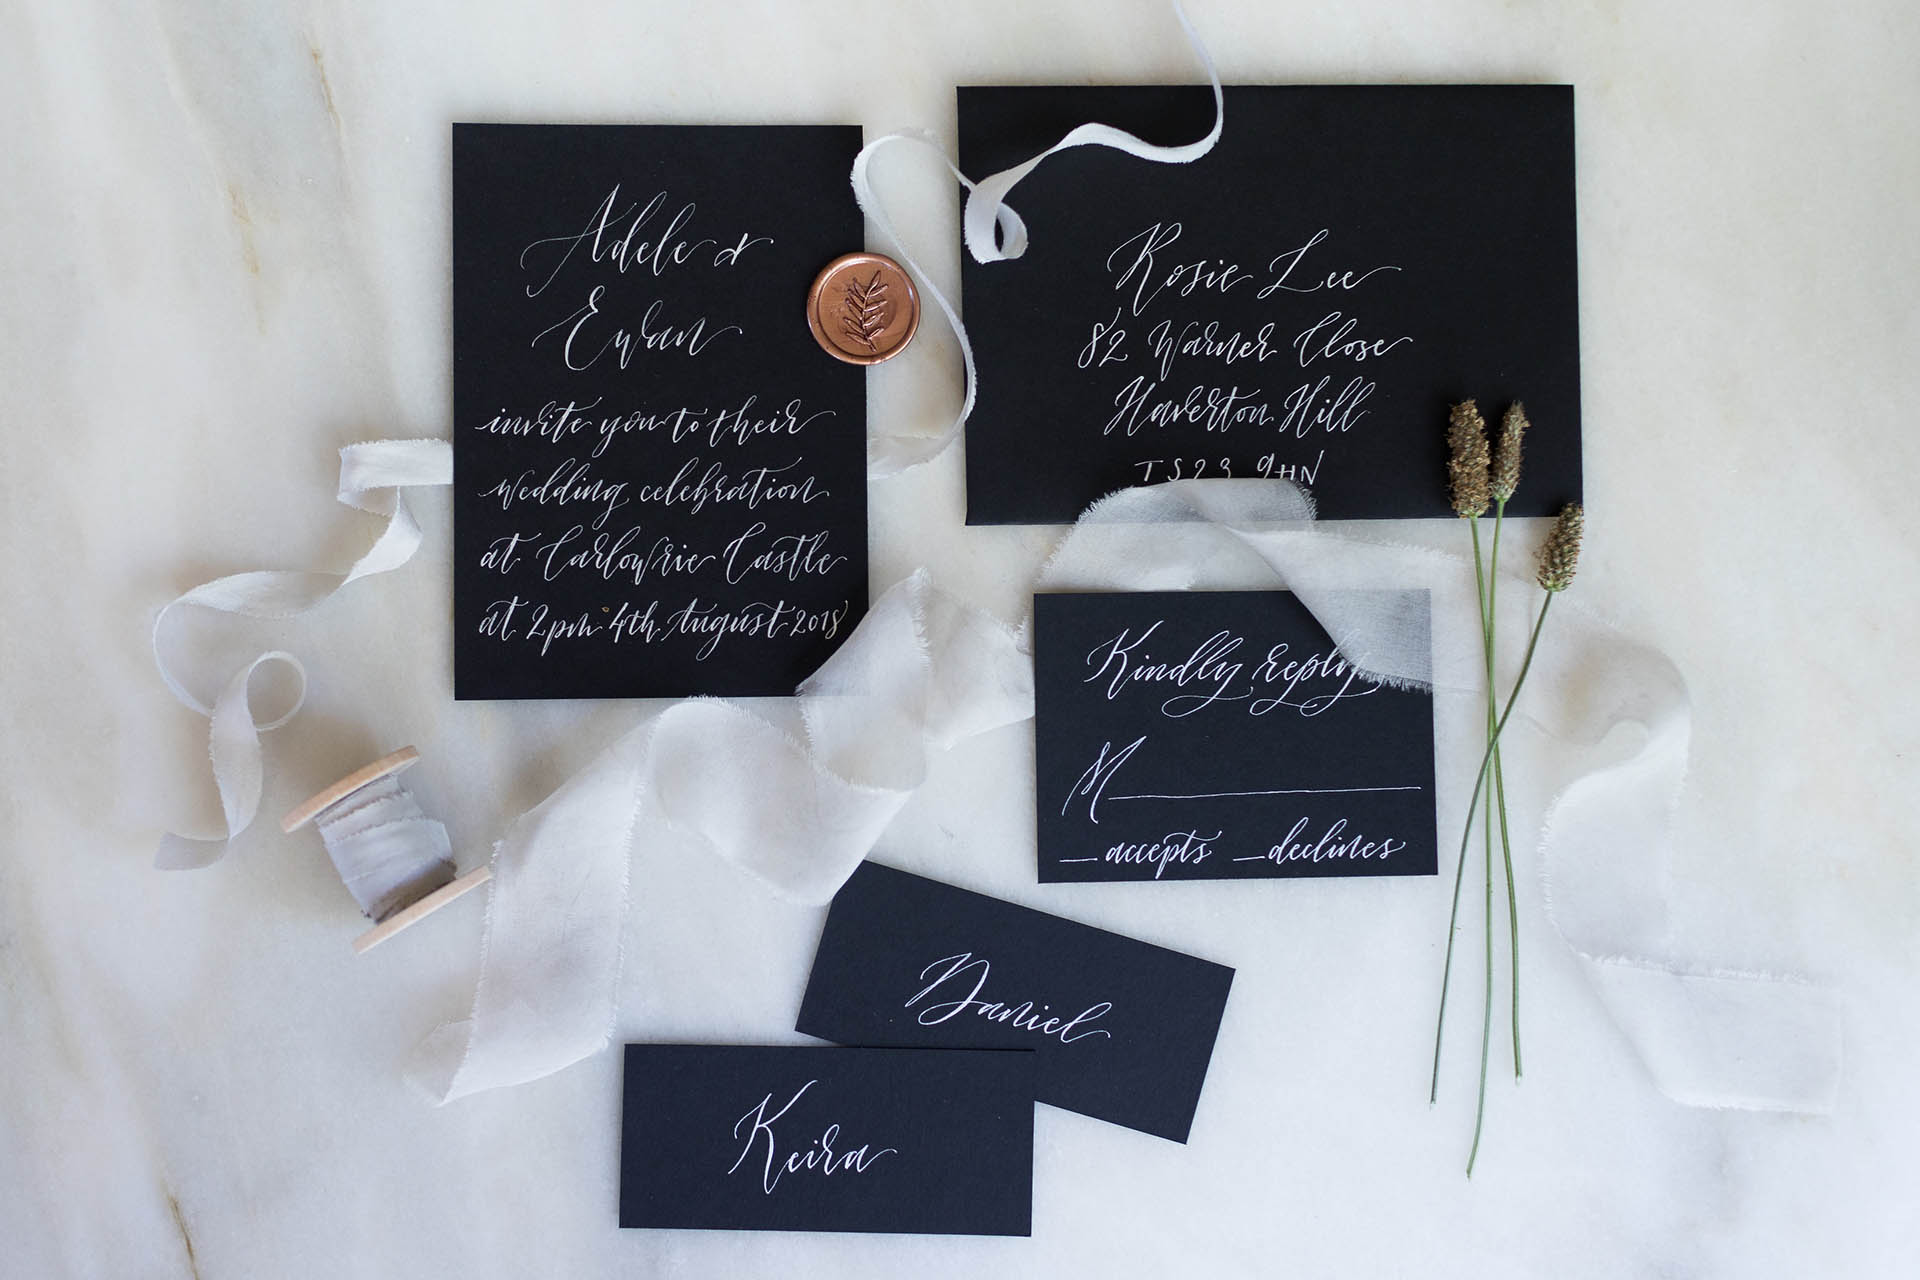 Dramatic silver ink on black paper stock for a modern city wedding.